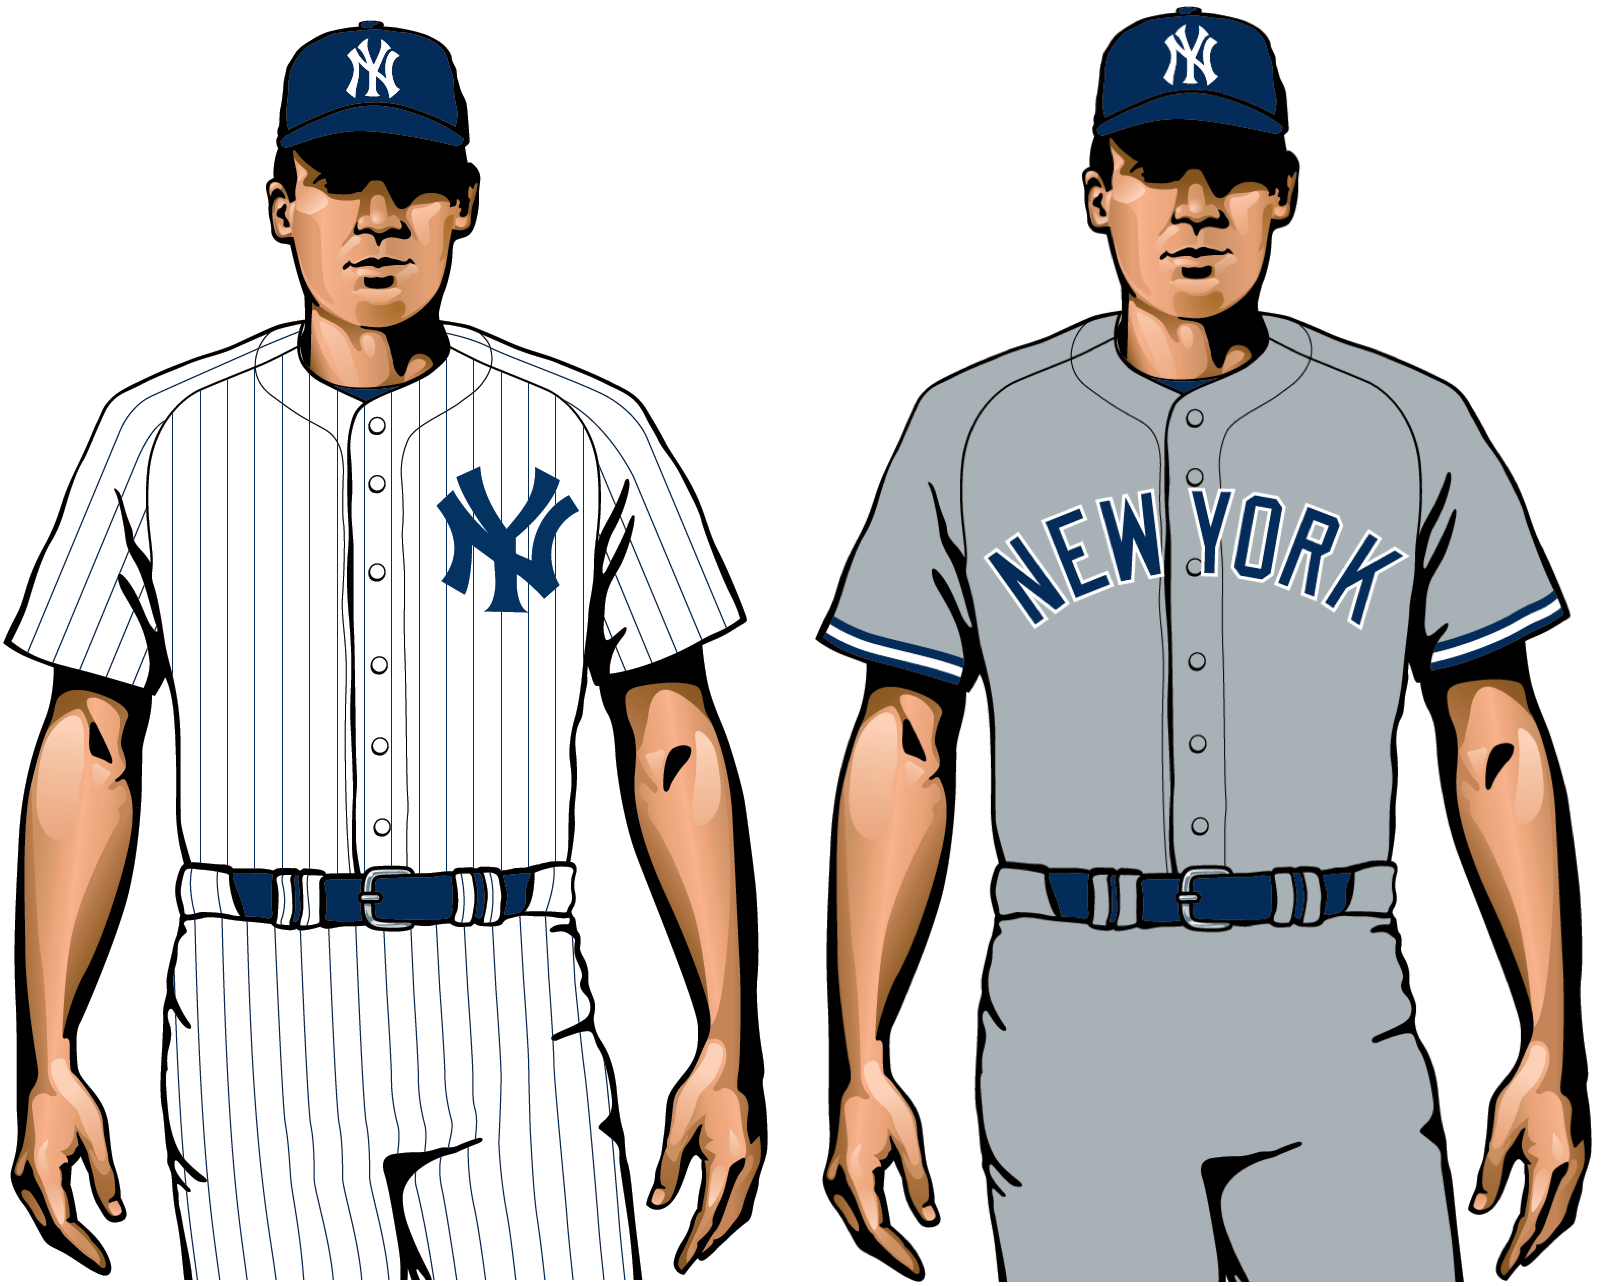 ny yankees 2020 uniforms